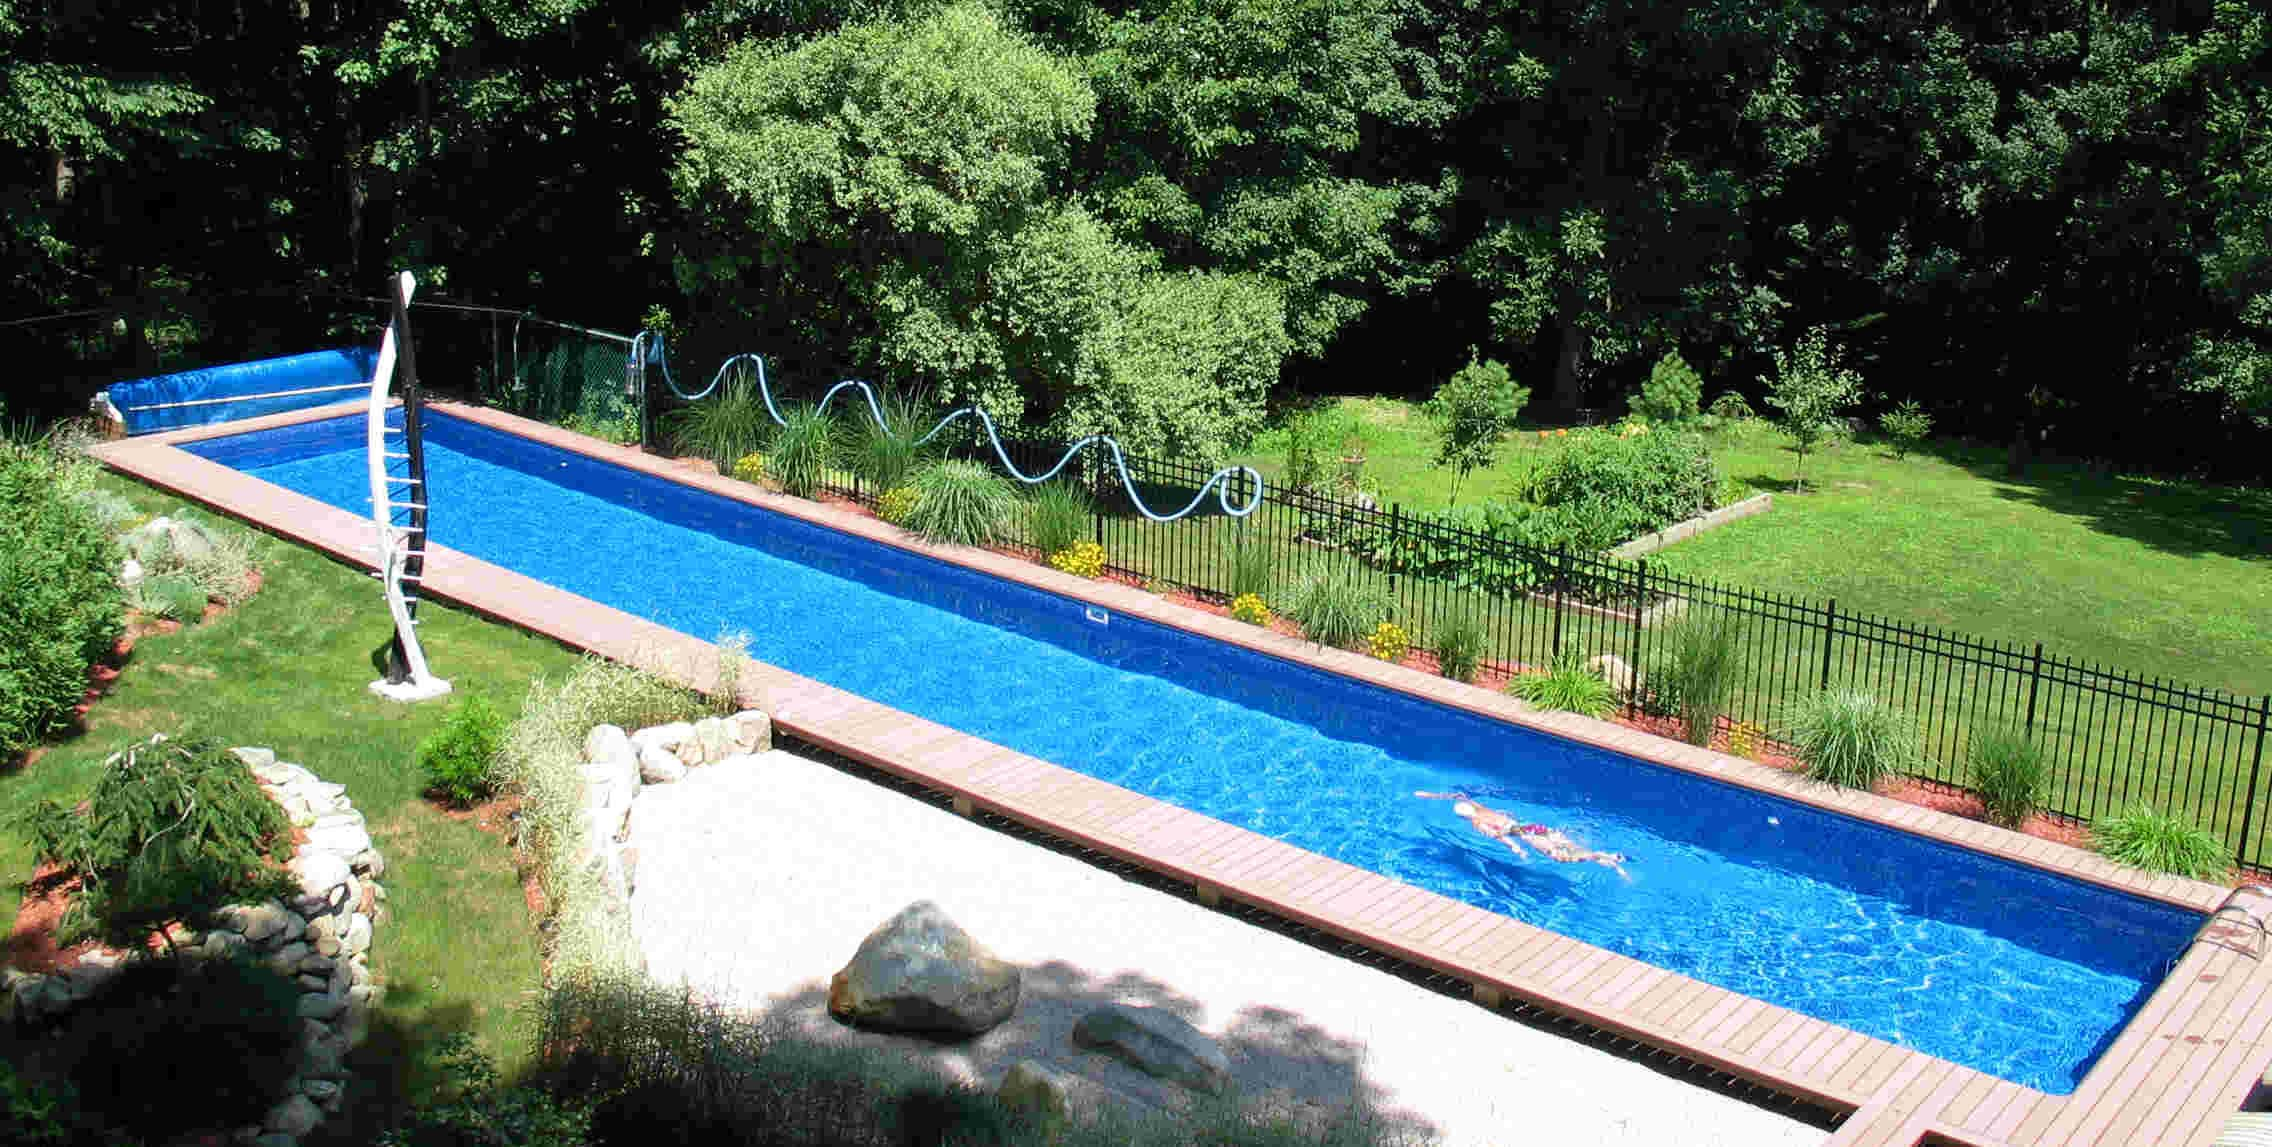 Diy inground swimming pool backyard design ideas for Design your own inground pool